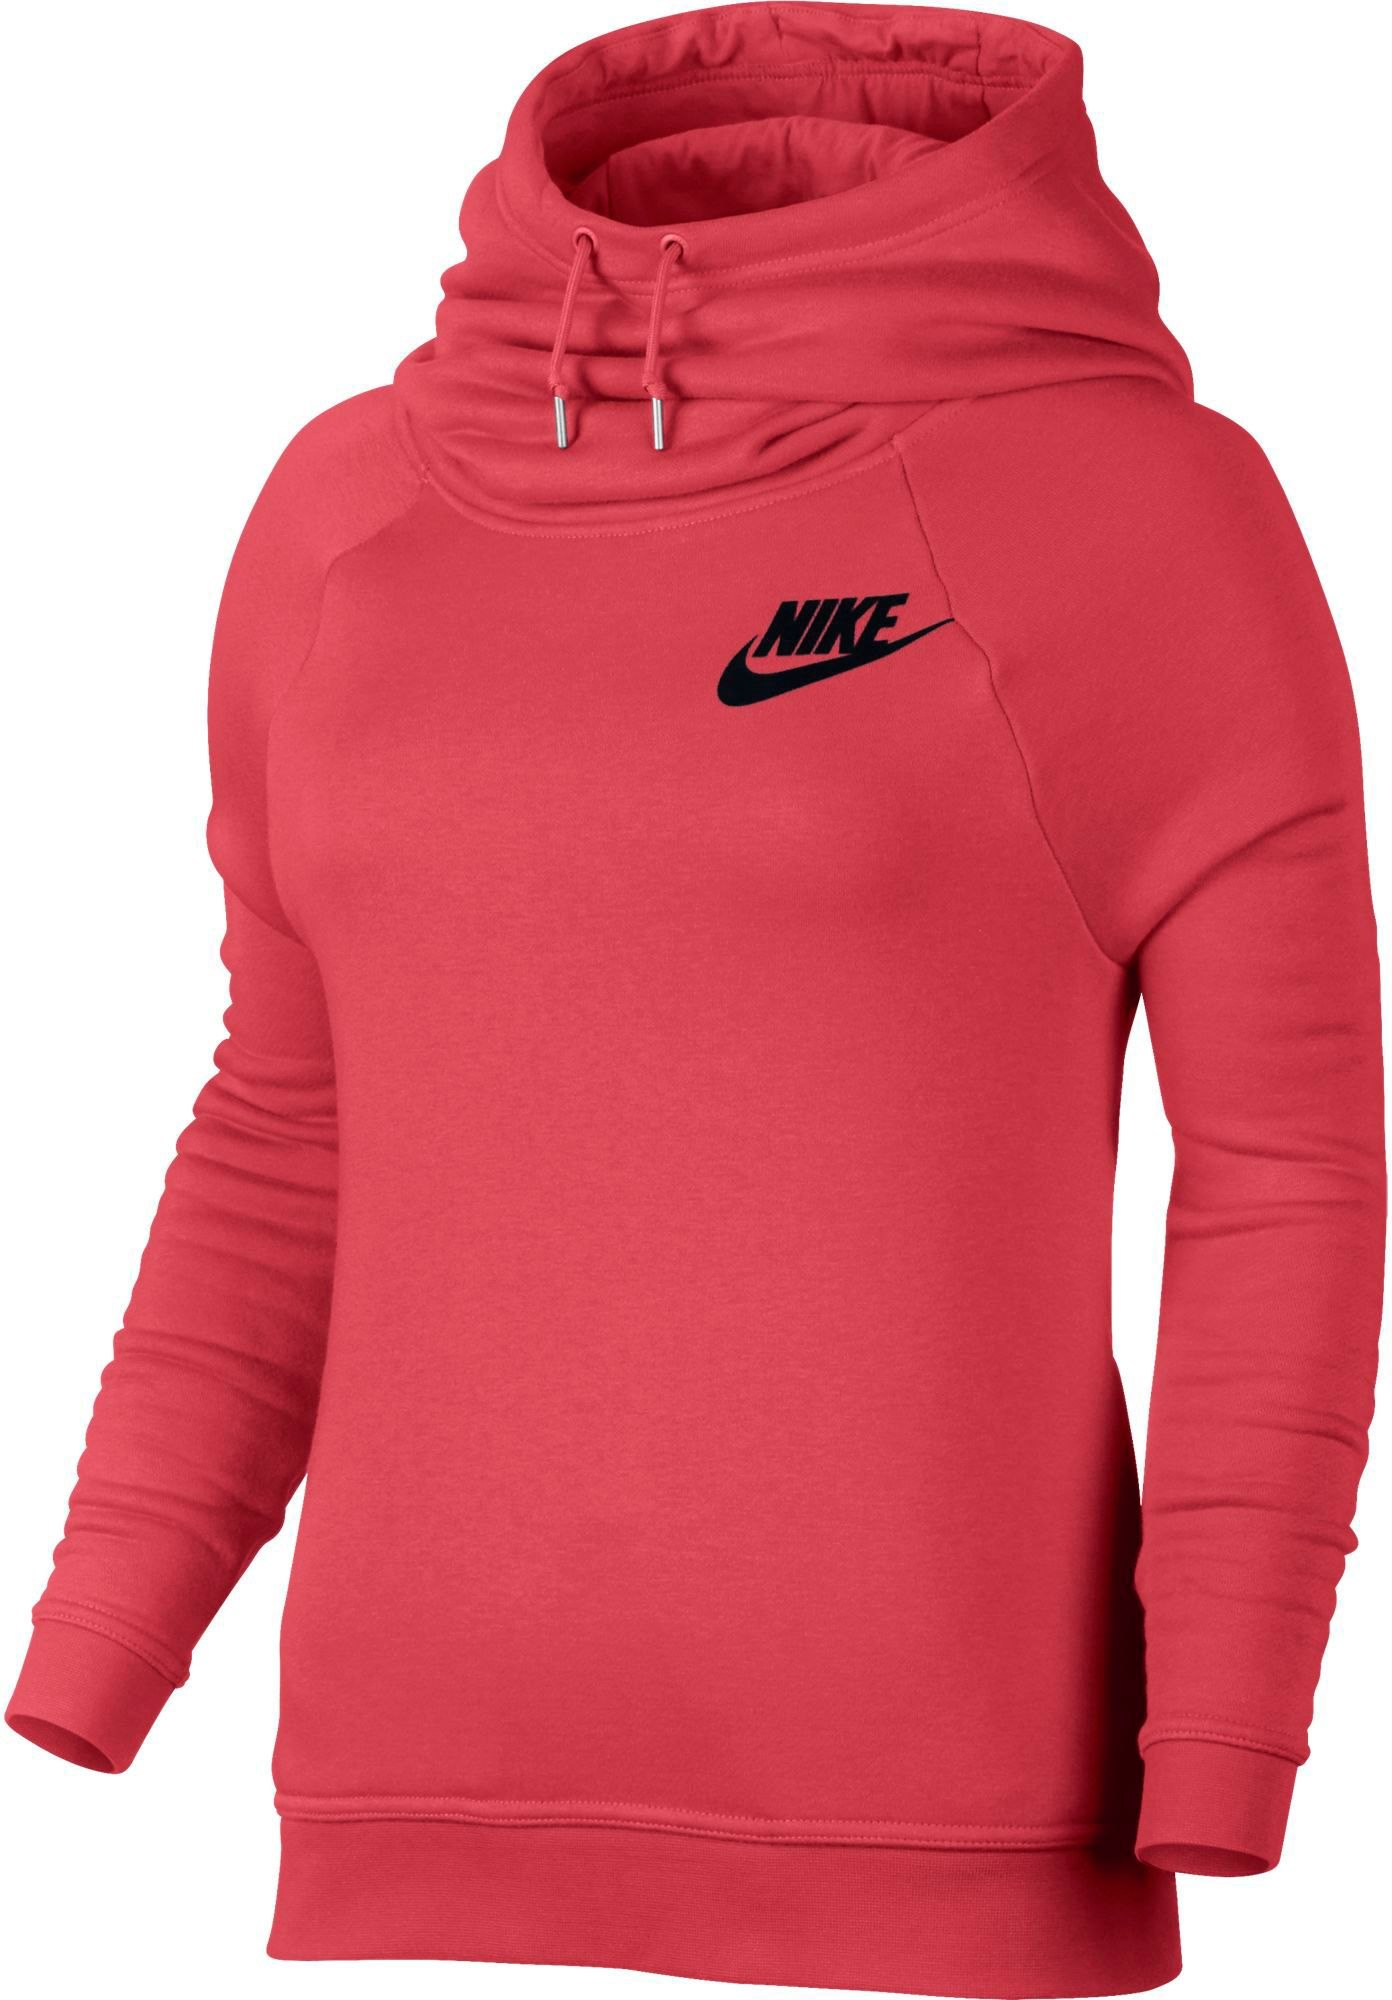 Shop the latest selection of Women's Nike Hoodies at Foot Locker. Find the hottest sneaker drops from brands like Jordan, Nike, Under Armour, New Balance, and a .